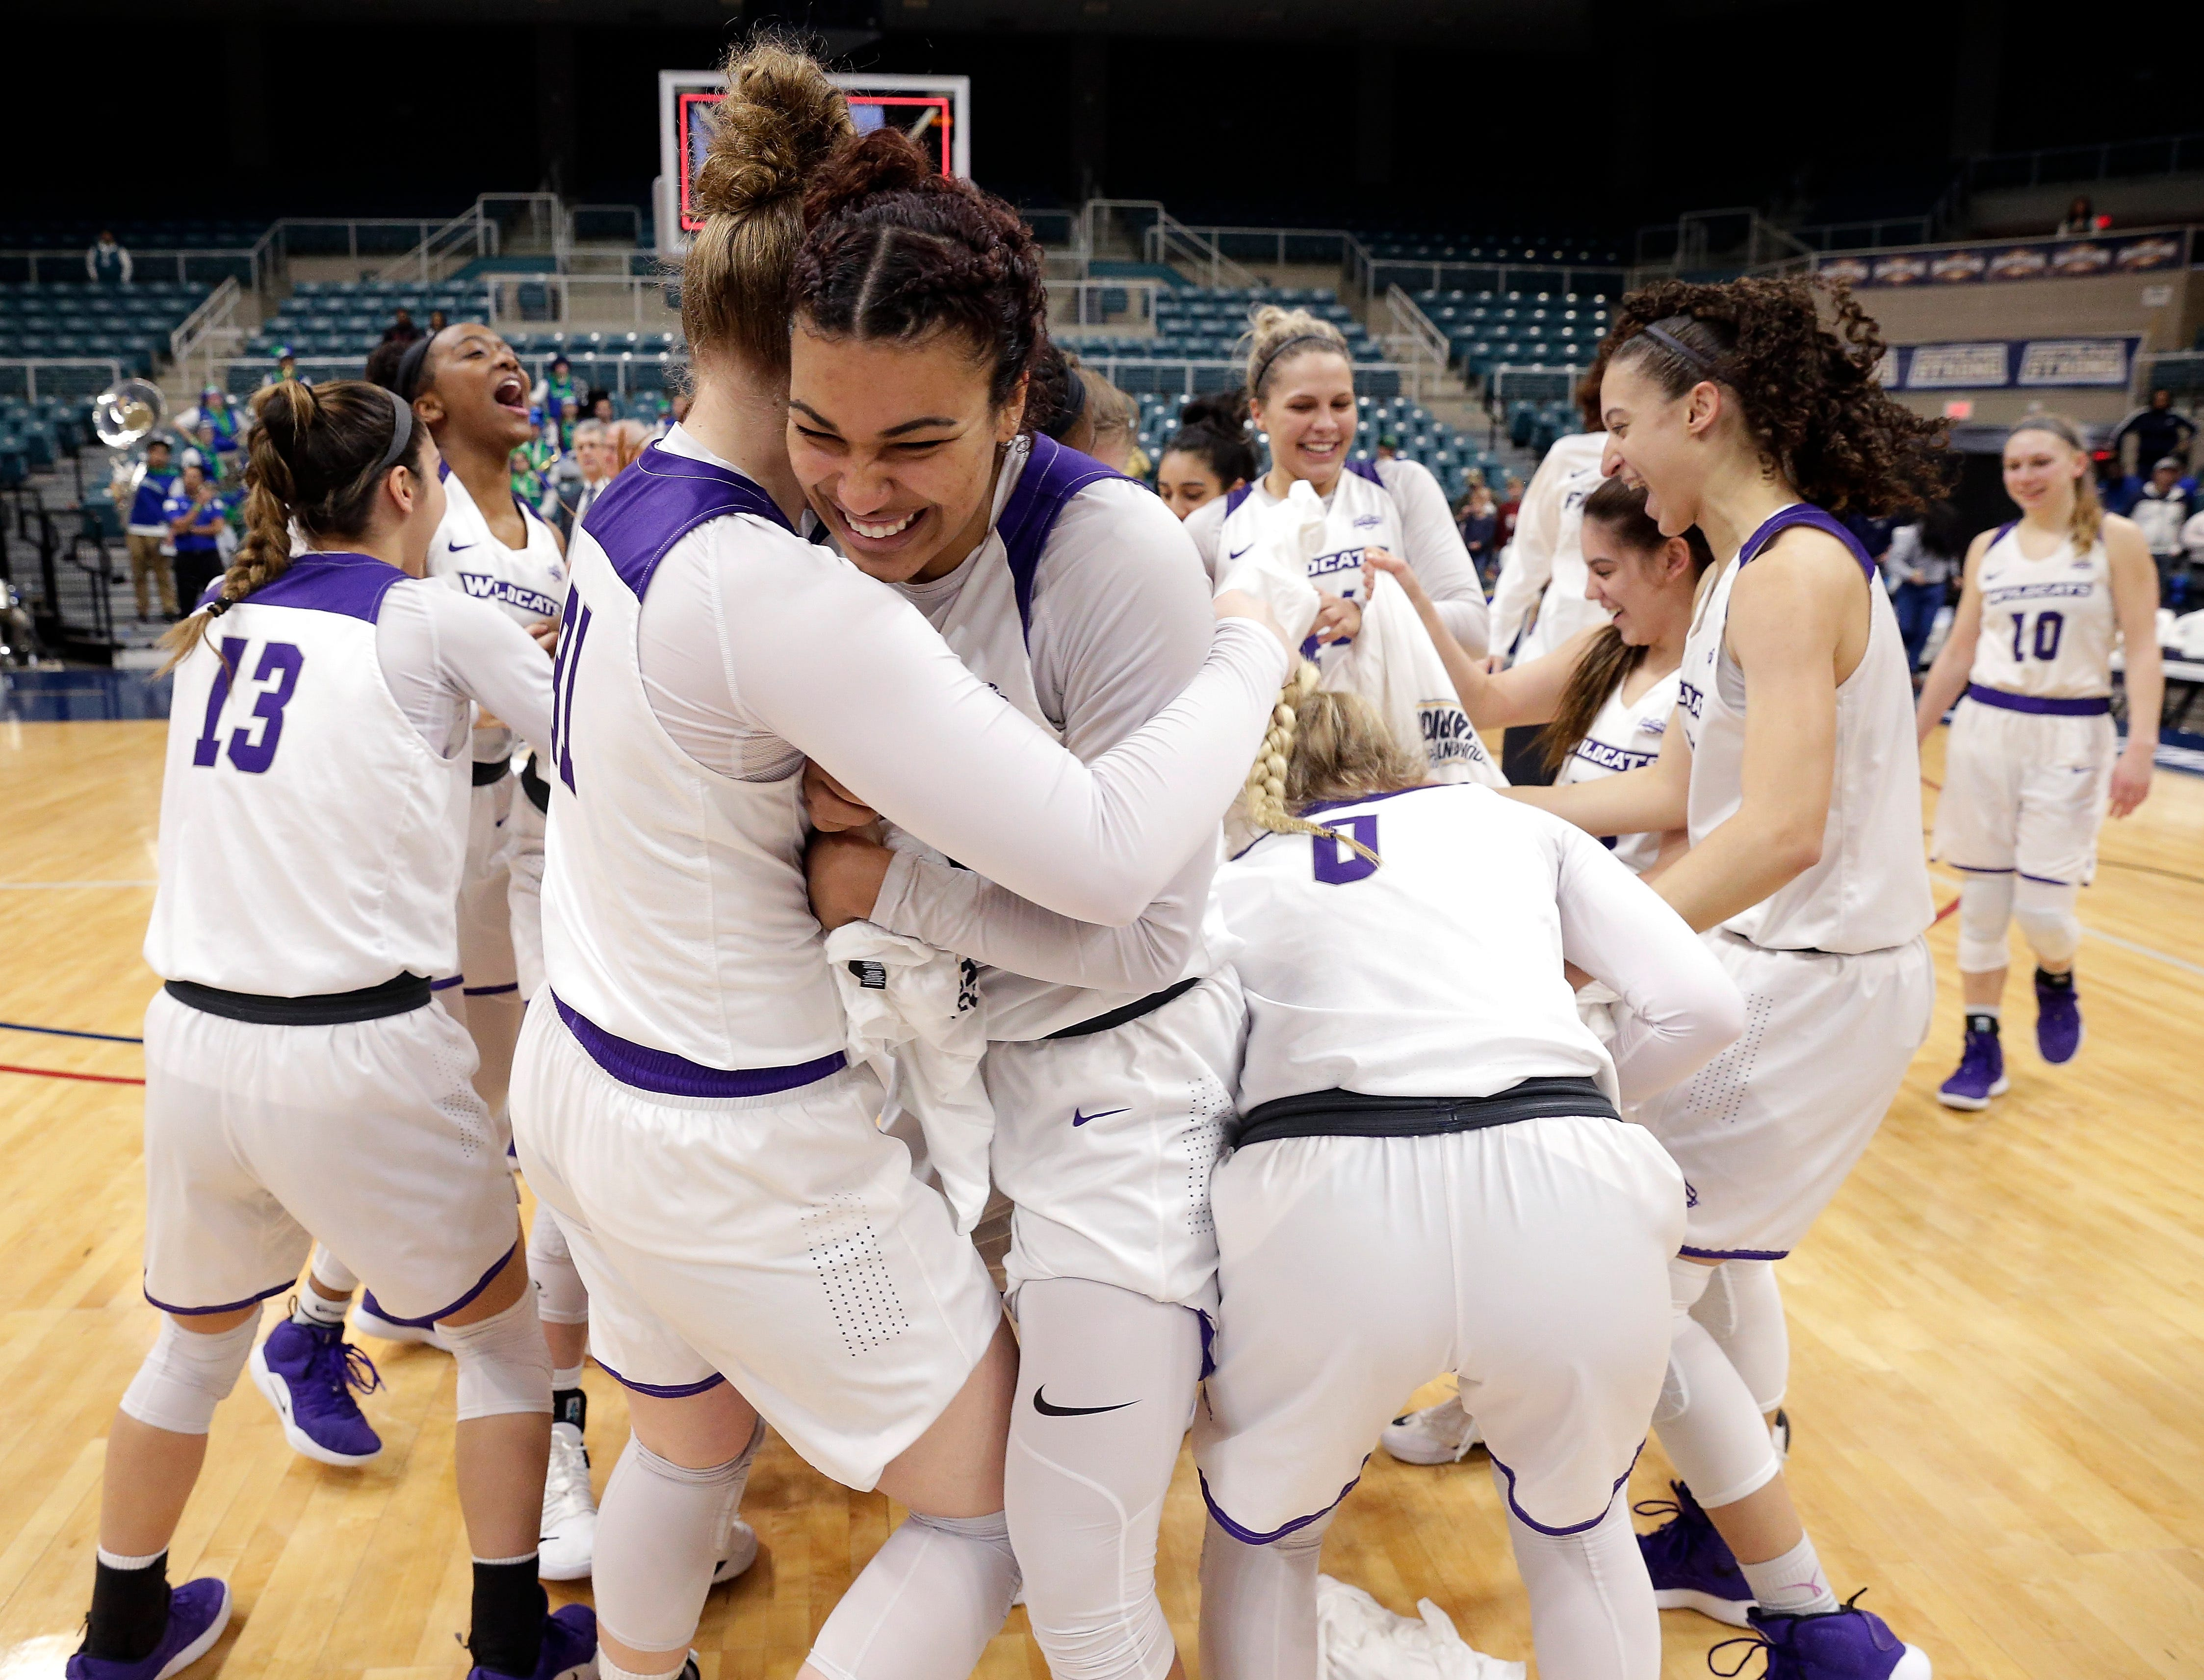 Abilene Christian guard Jazz Taylor and forward Makayla Mabry (foreground) hug as the rest of the team rush center court after defeating Texas A&M-Corpus Christi 69-68 or the Southland Conference women's tournament title Sunday, March 17, 2019, in Katy.